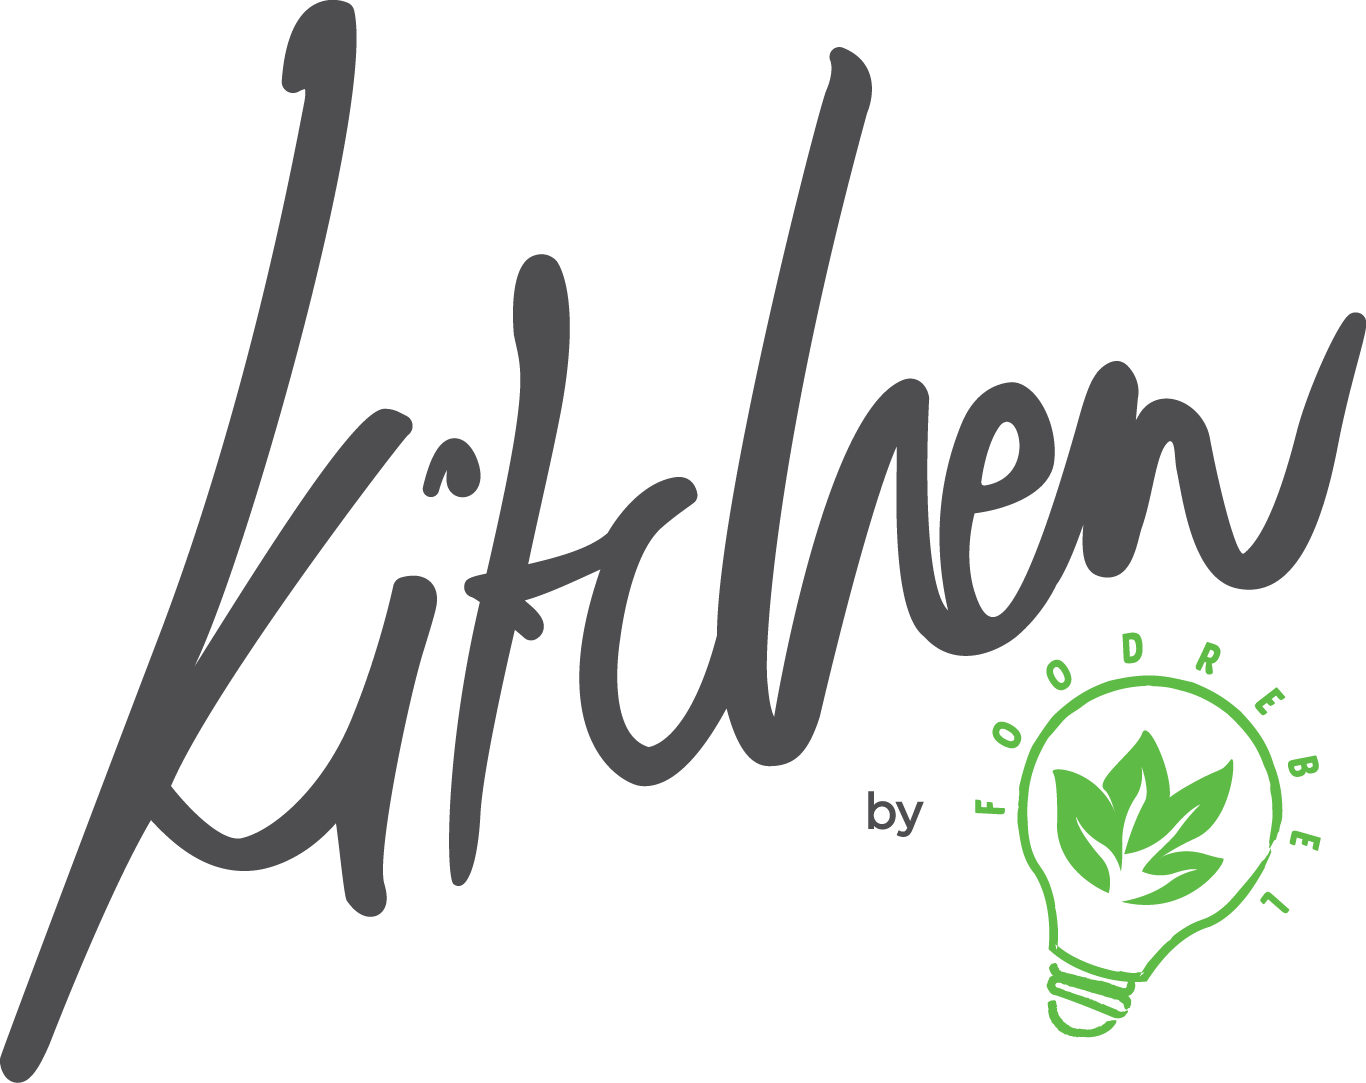 Kitchen by food rebel.png